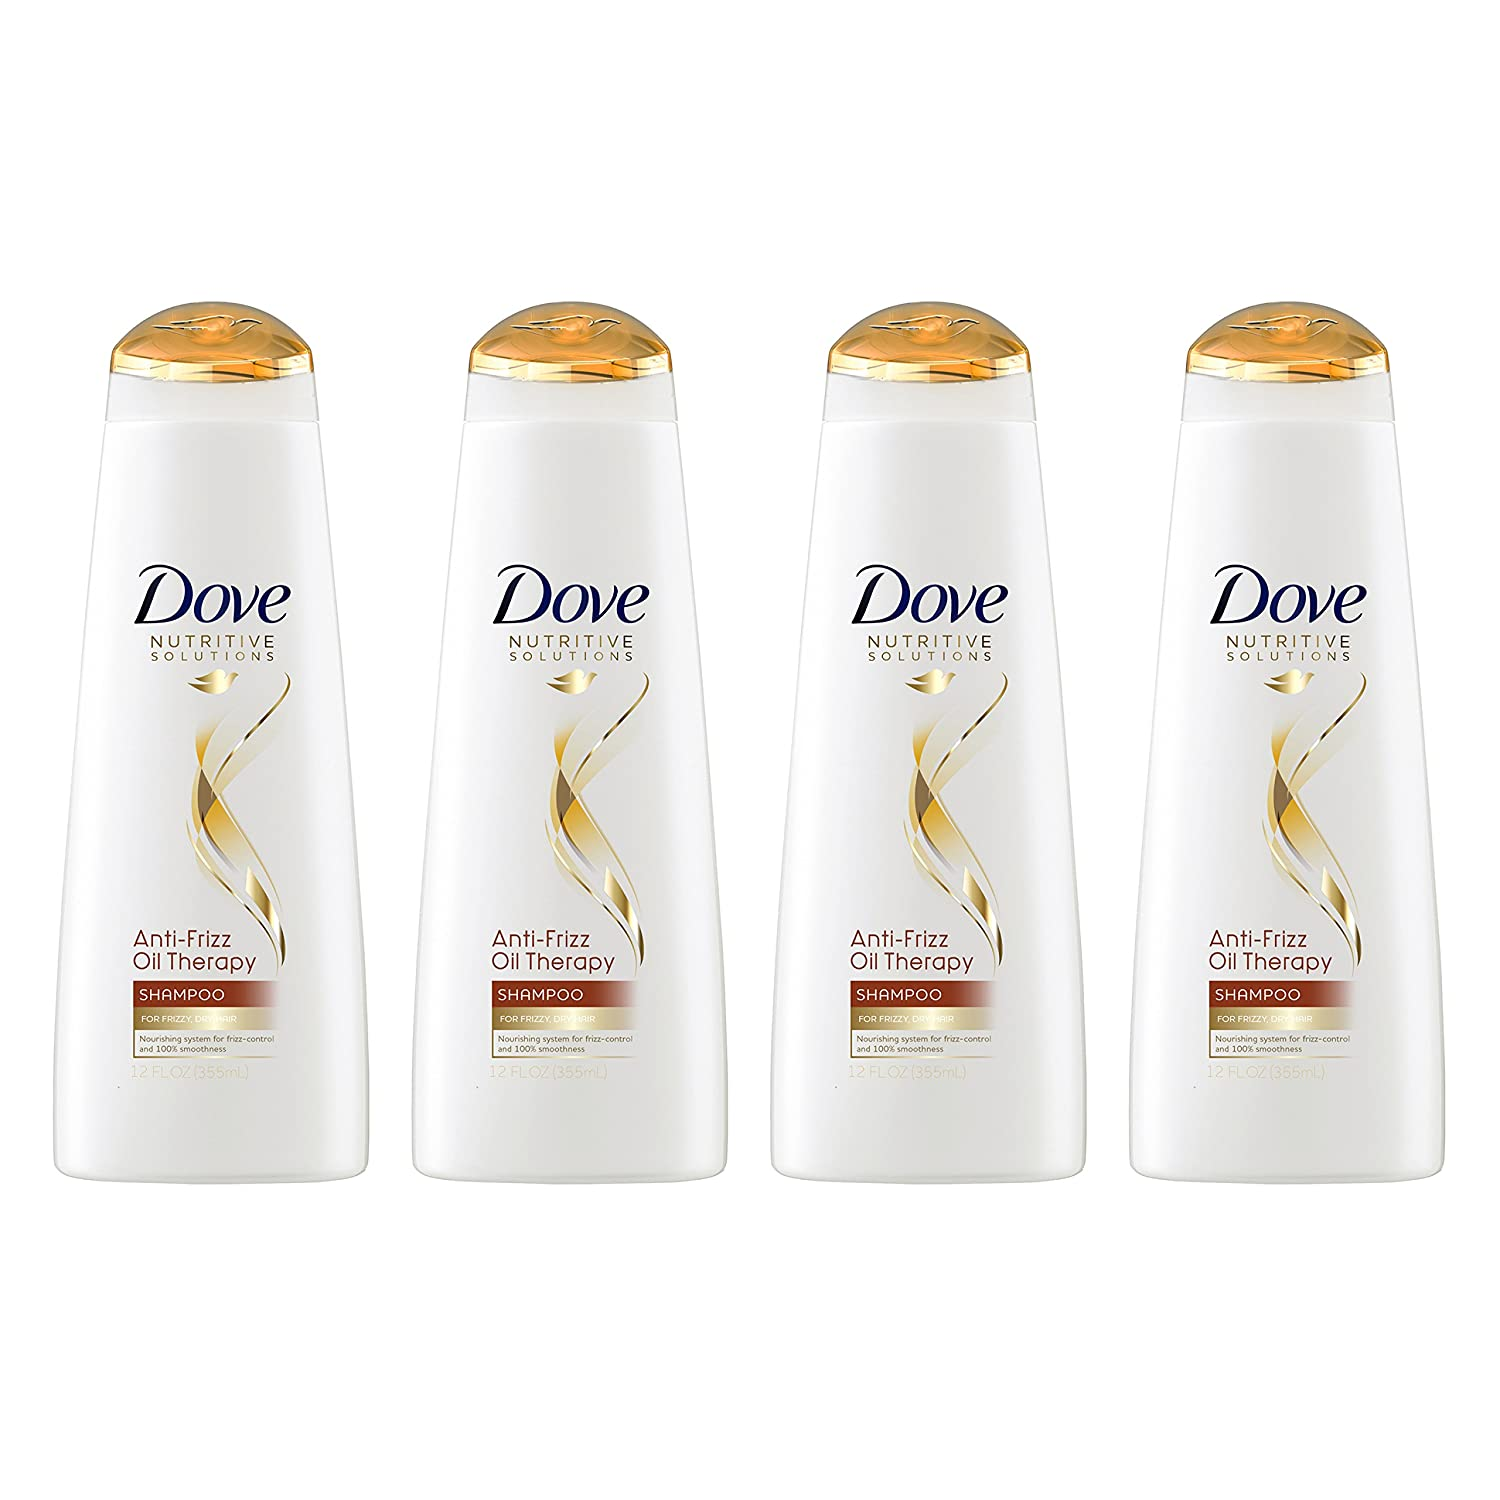 Dove Nutritive Solutions Shampoo, Anti-Frizz Oil Therapy 12 Fl Oz, Pack of 4